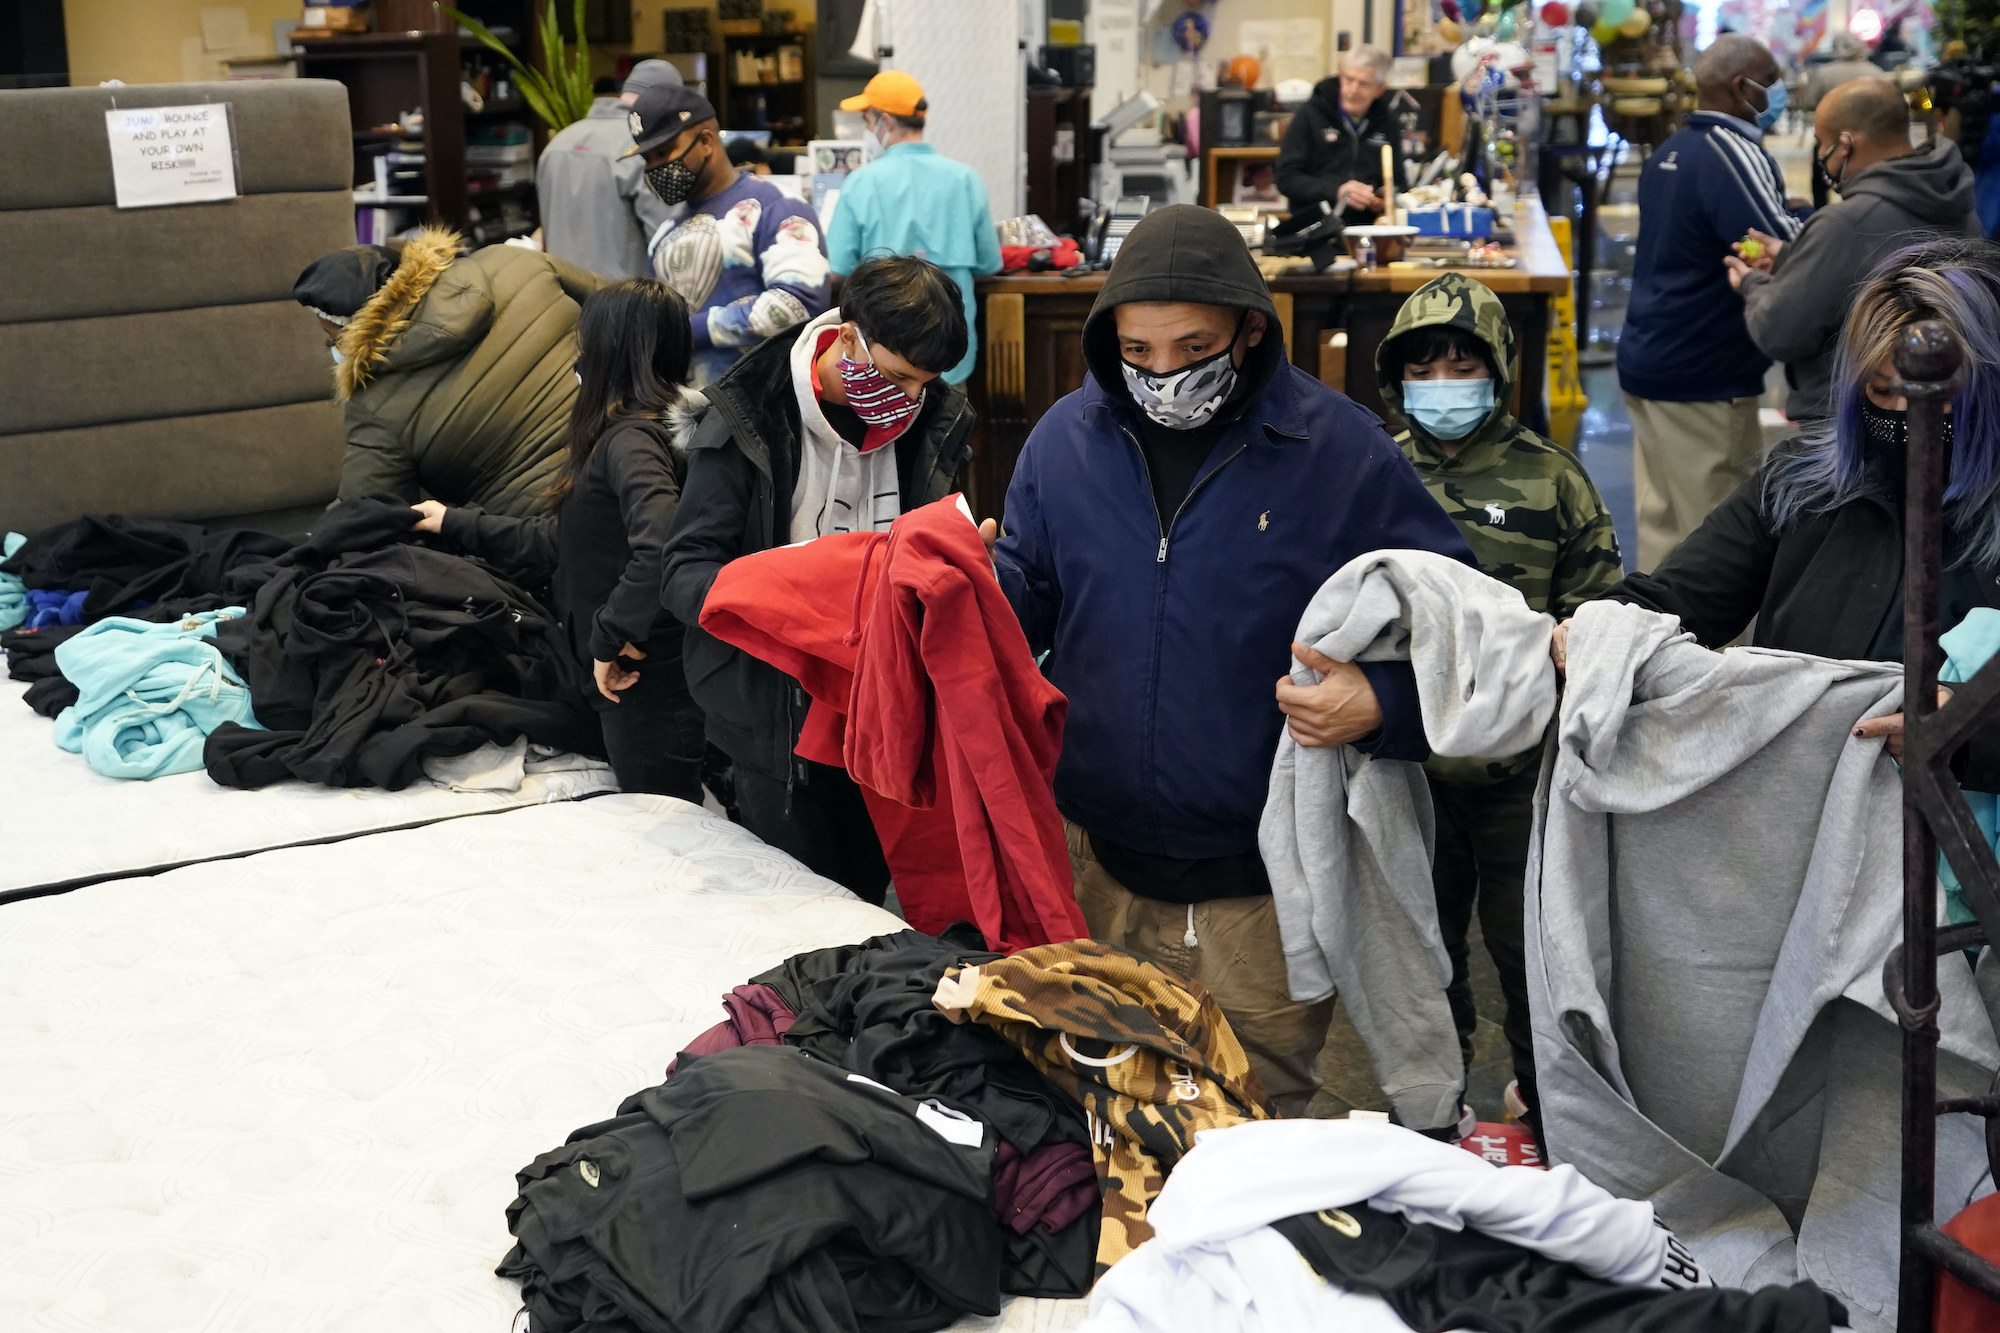 A person wearing a hoodie holds sweatshirts and looks through piles of clothing inside a furniture store